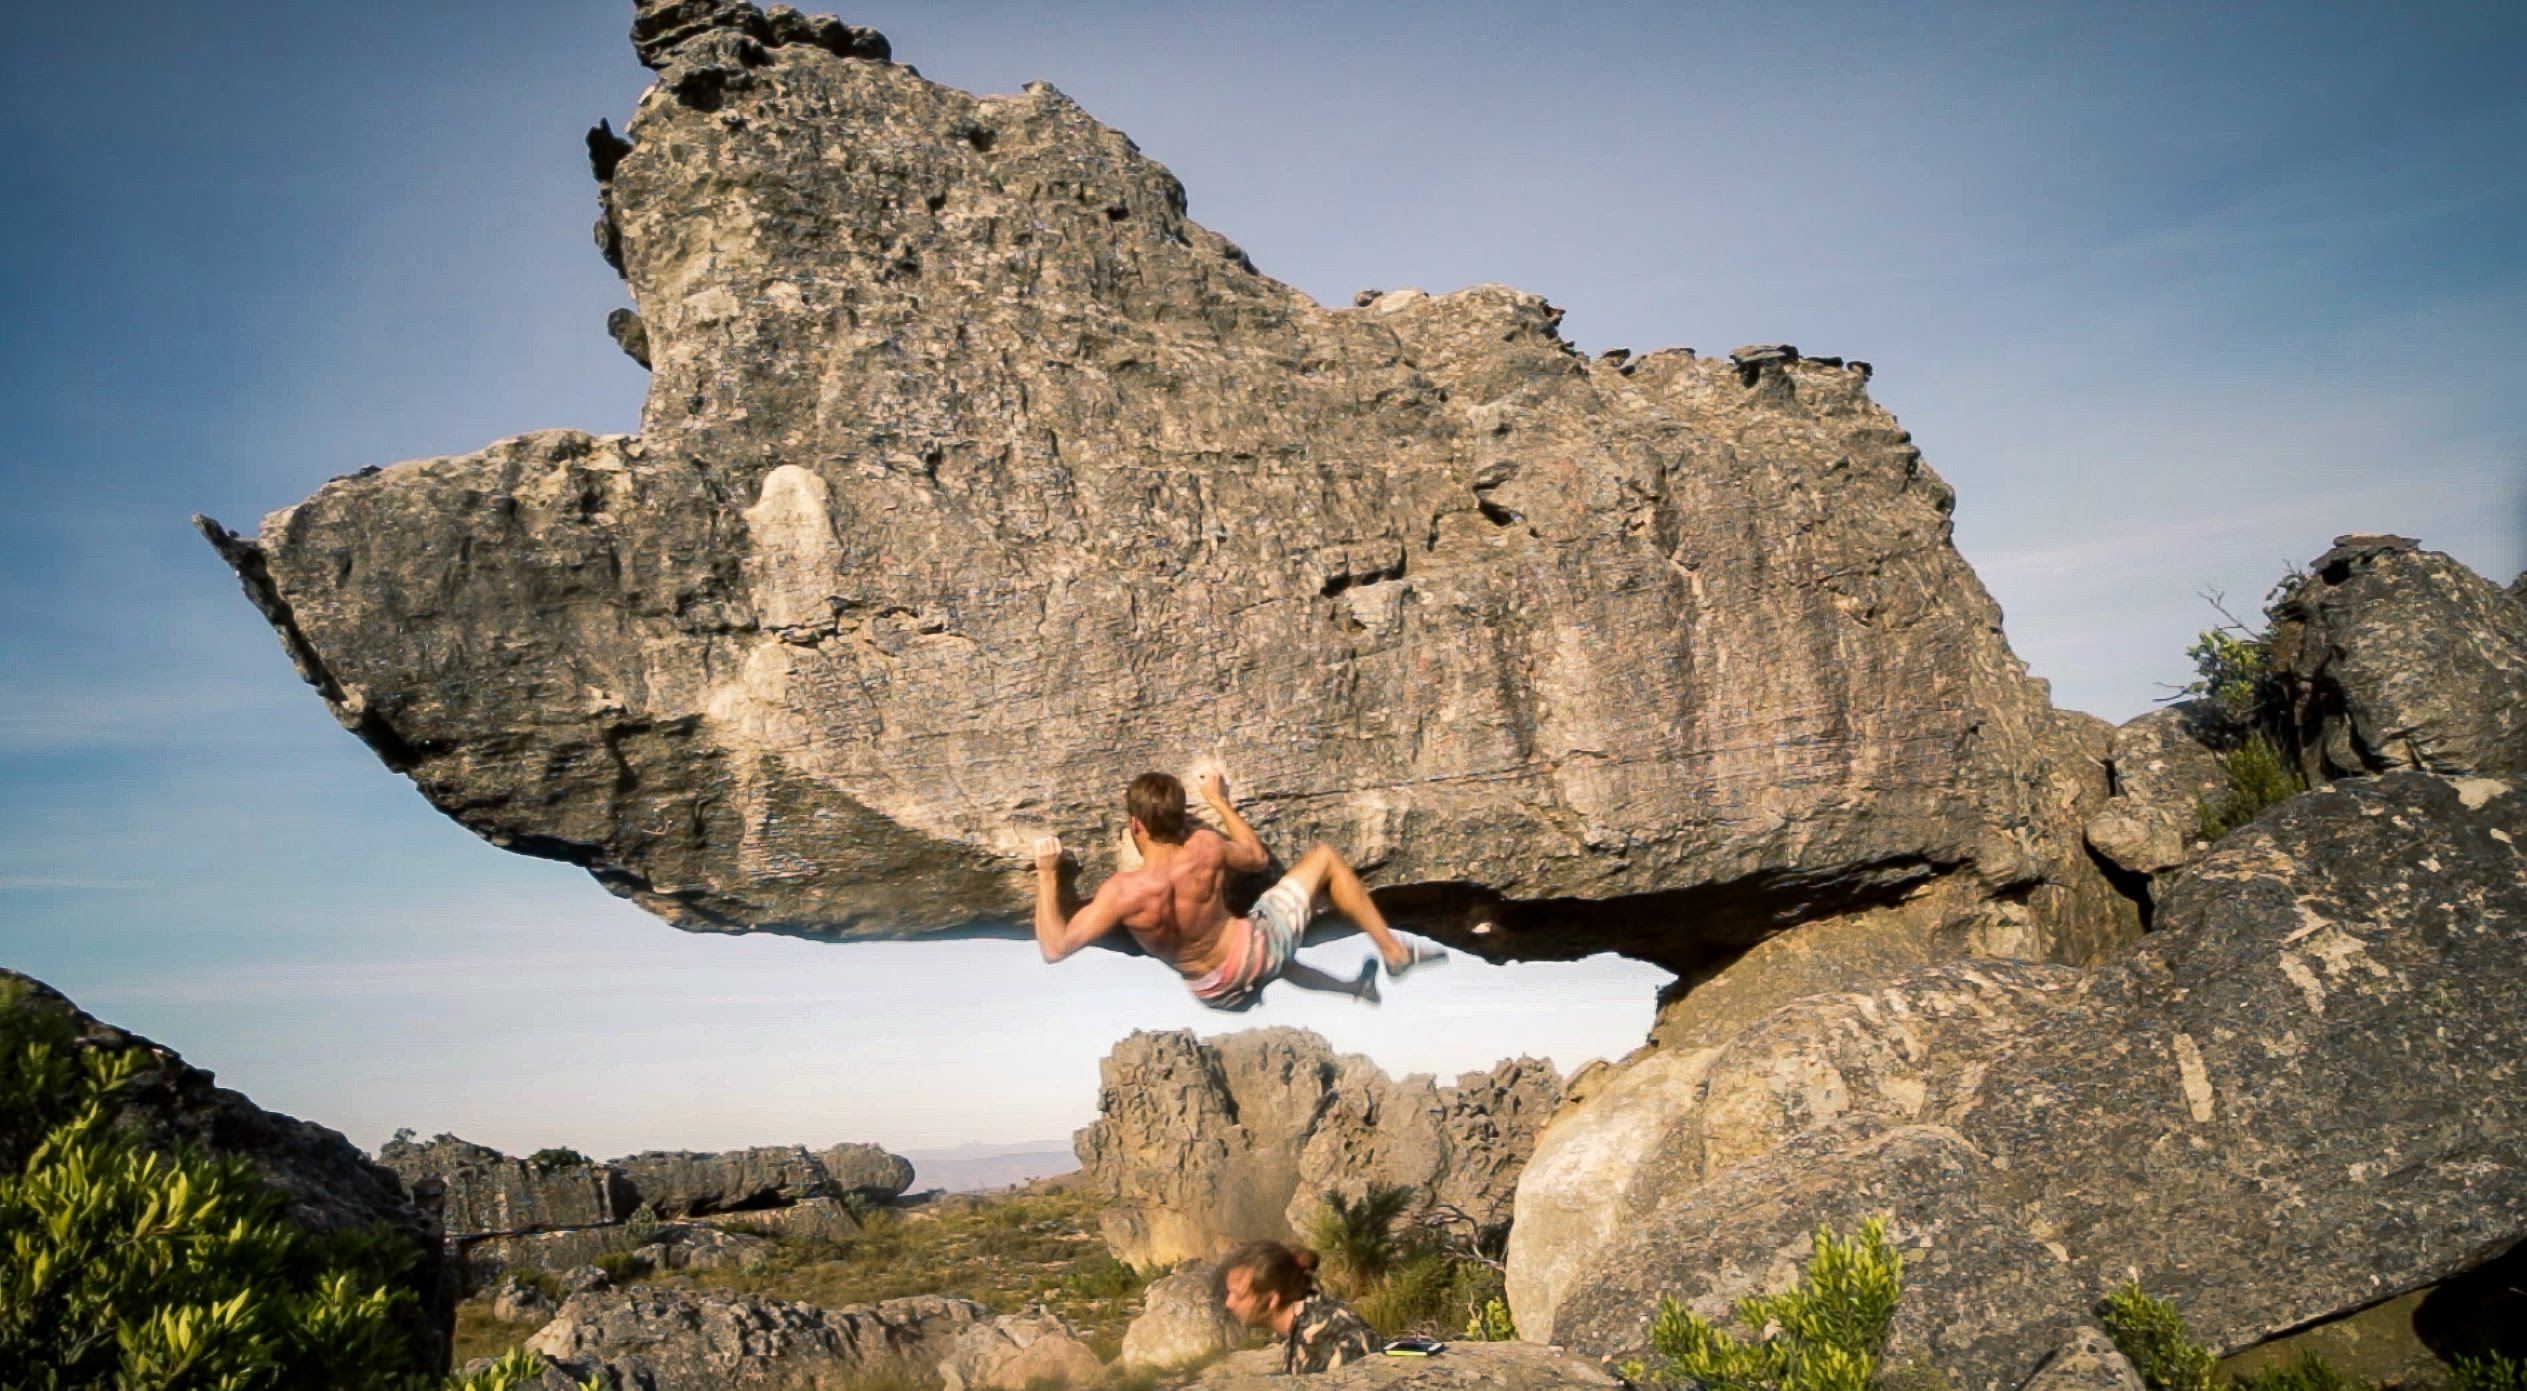 bouldering_adventure-sports-extreme outdoor sports